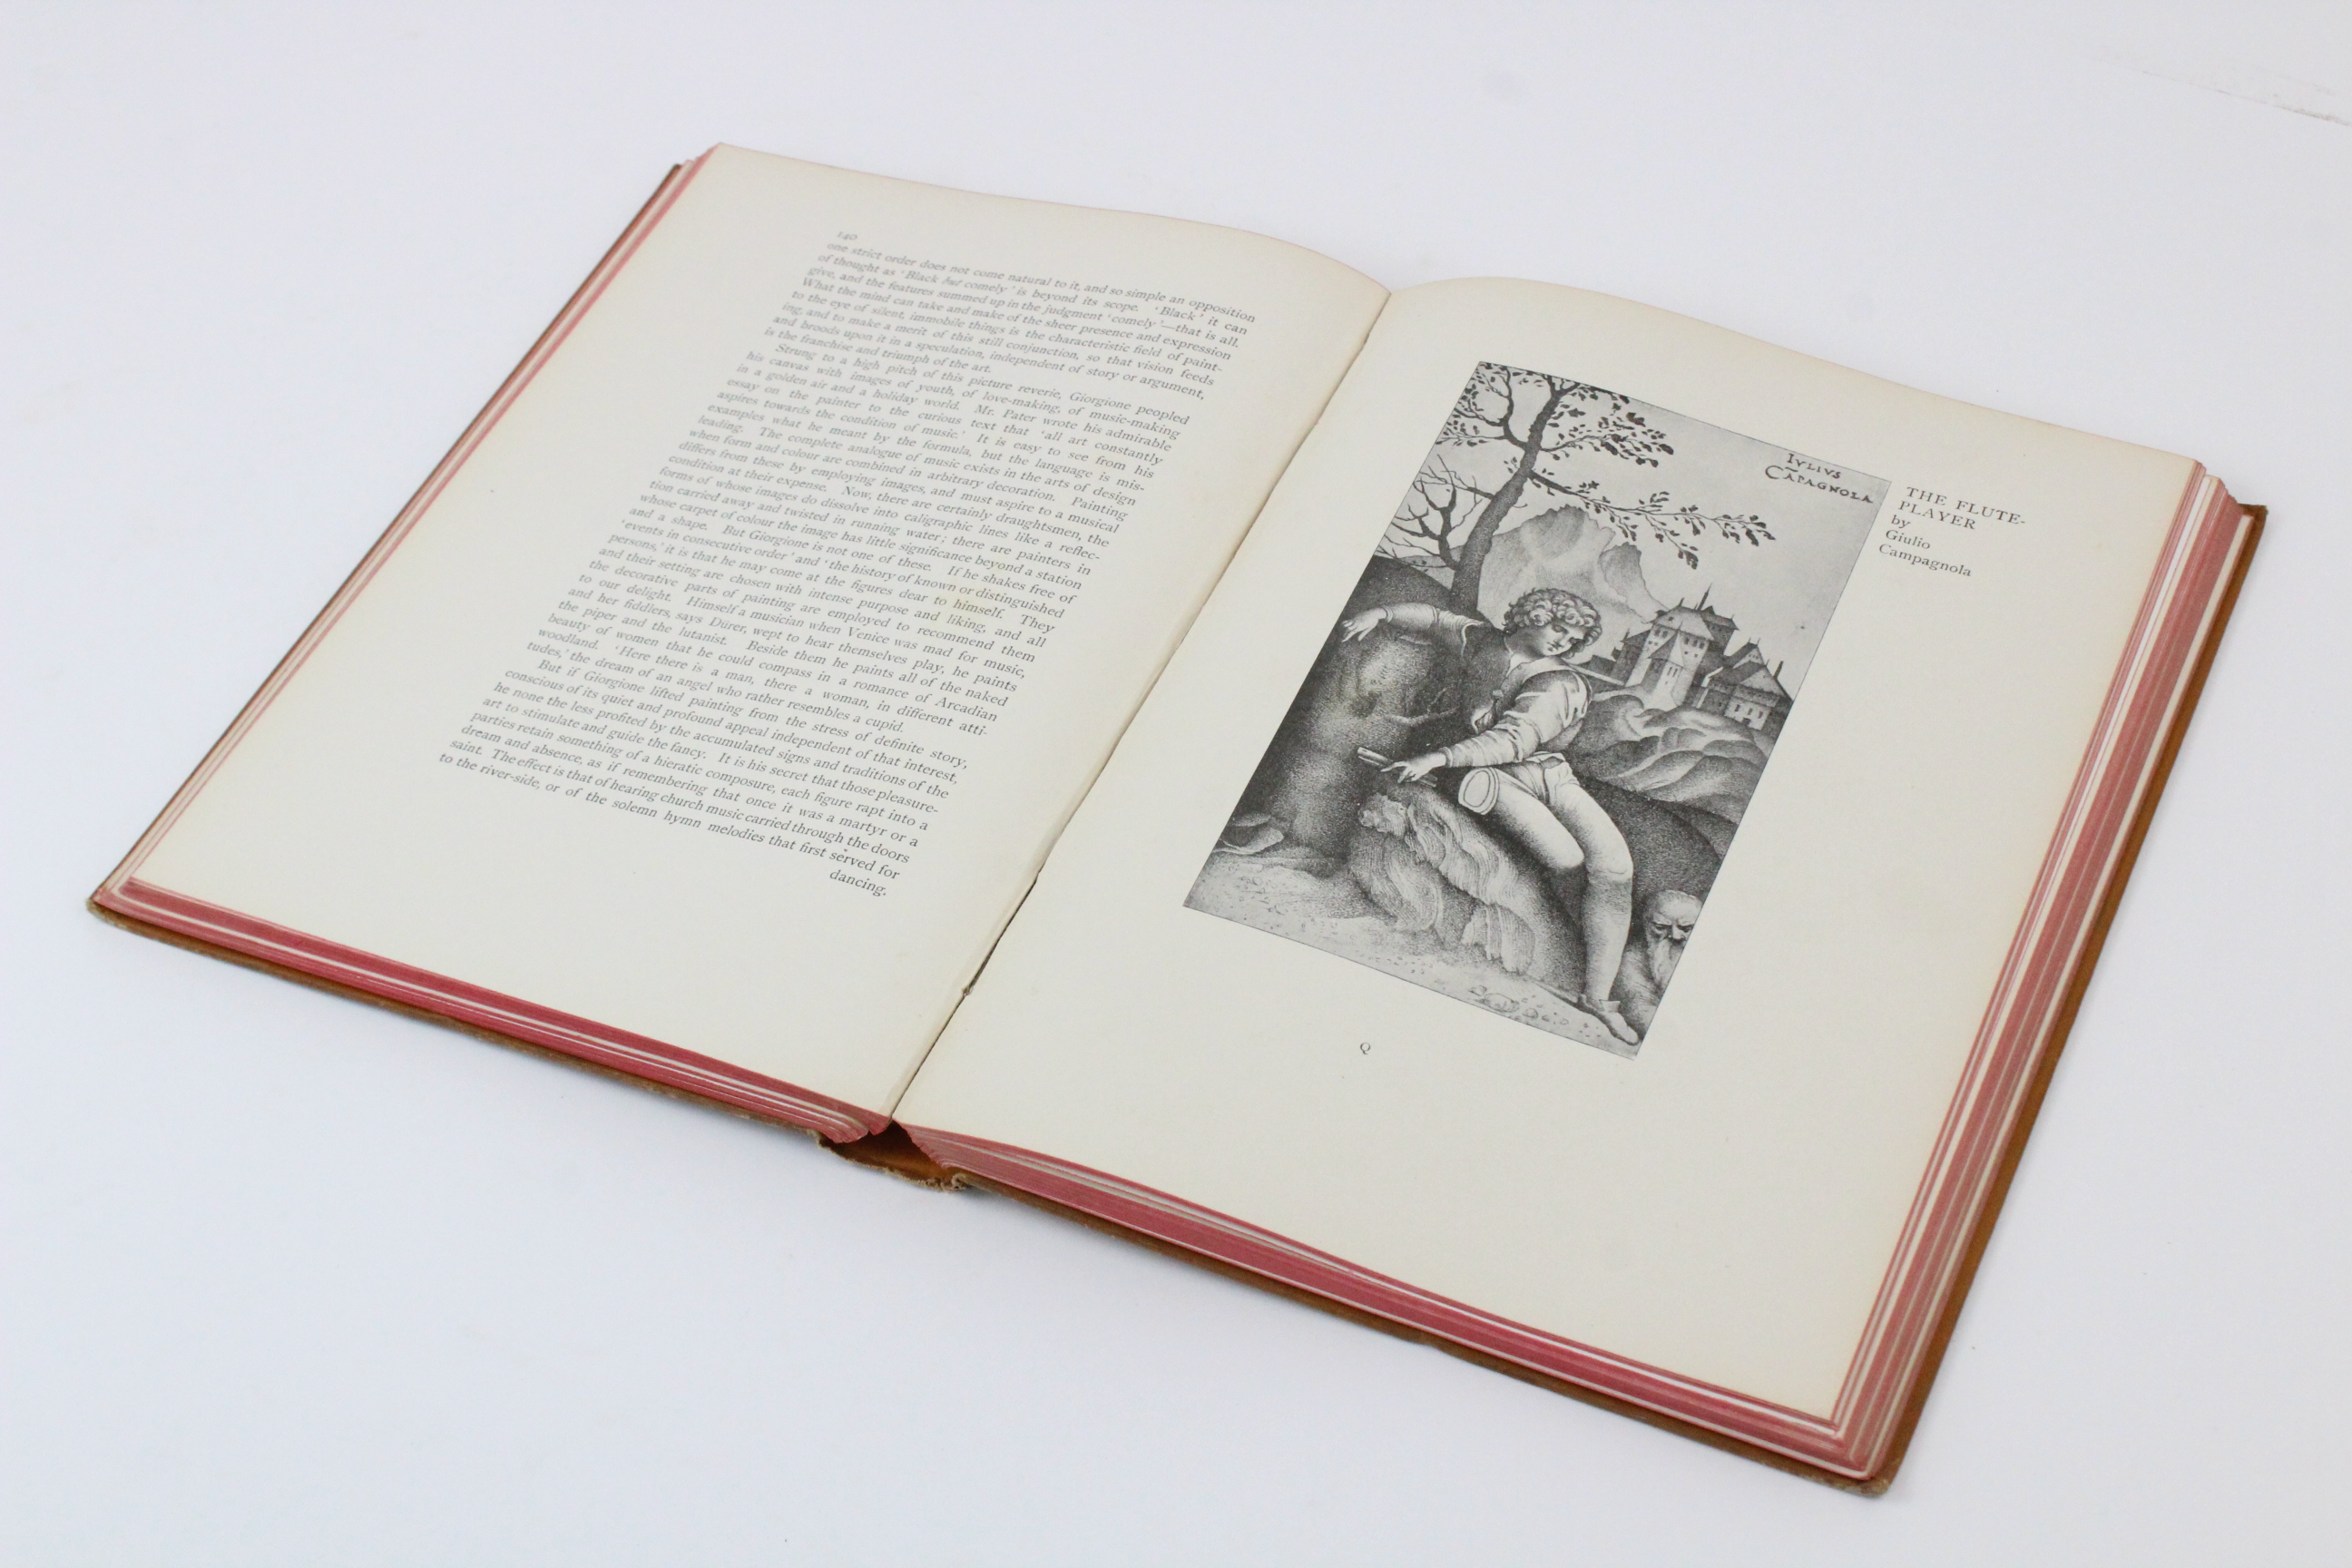 Hazelwood (C) et al, THE PAGEANT, 1897 edition, illustrated red boards, illustrated endpapers, - Image 5 of 16